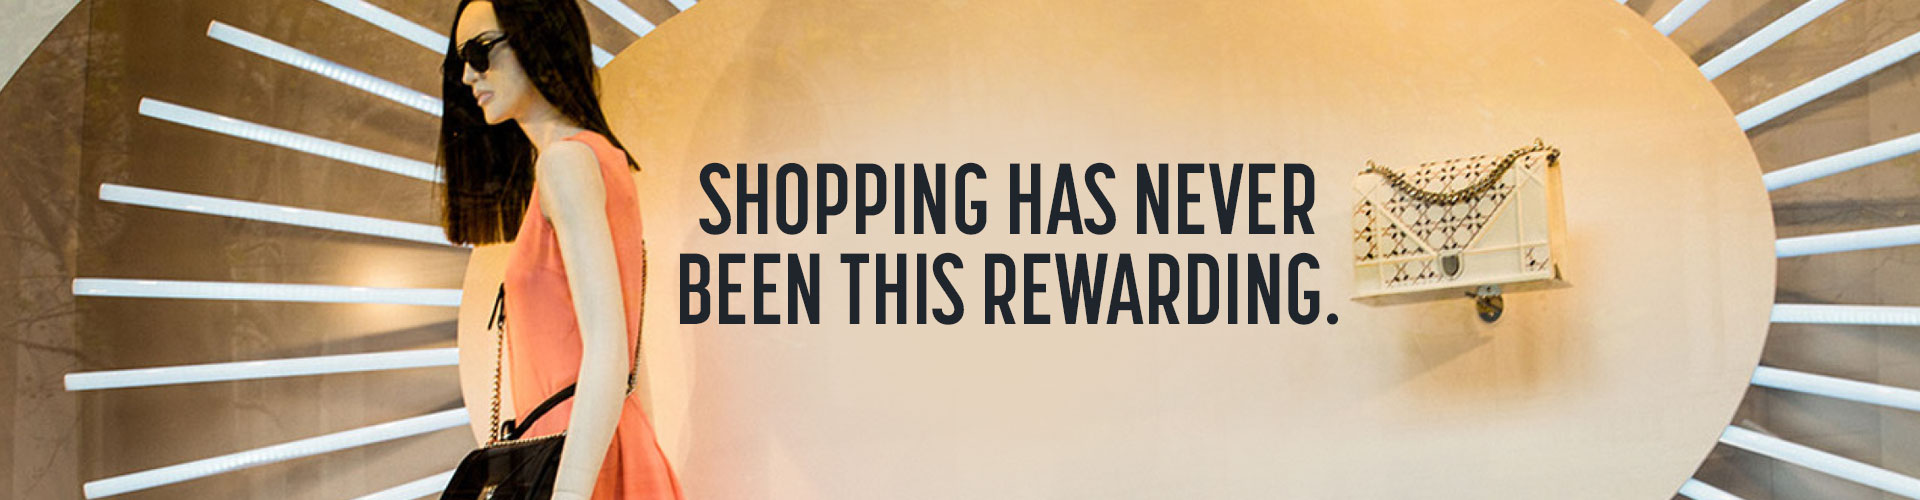 Shopping has never been this rewarding.